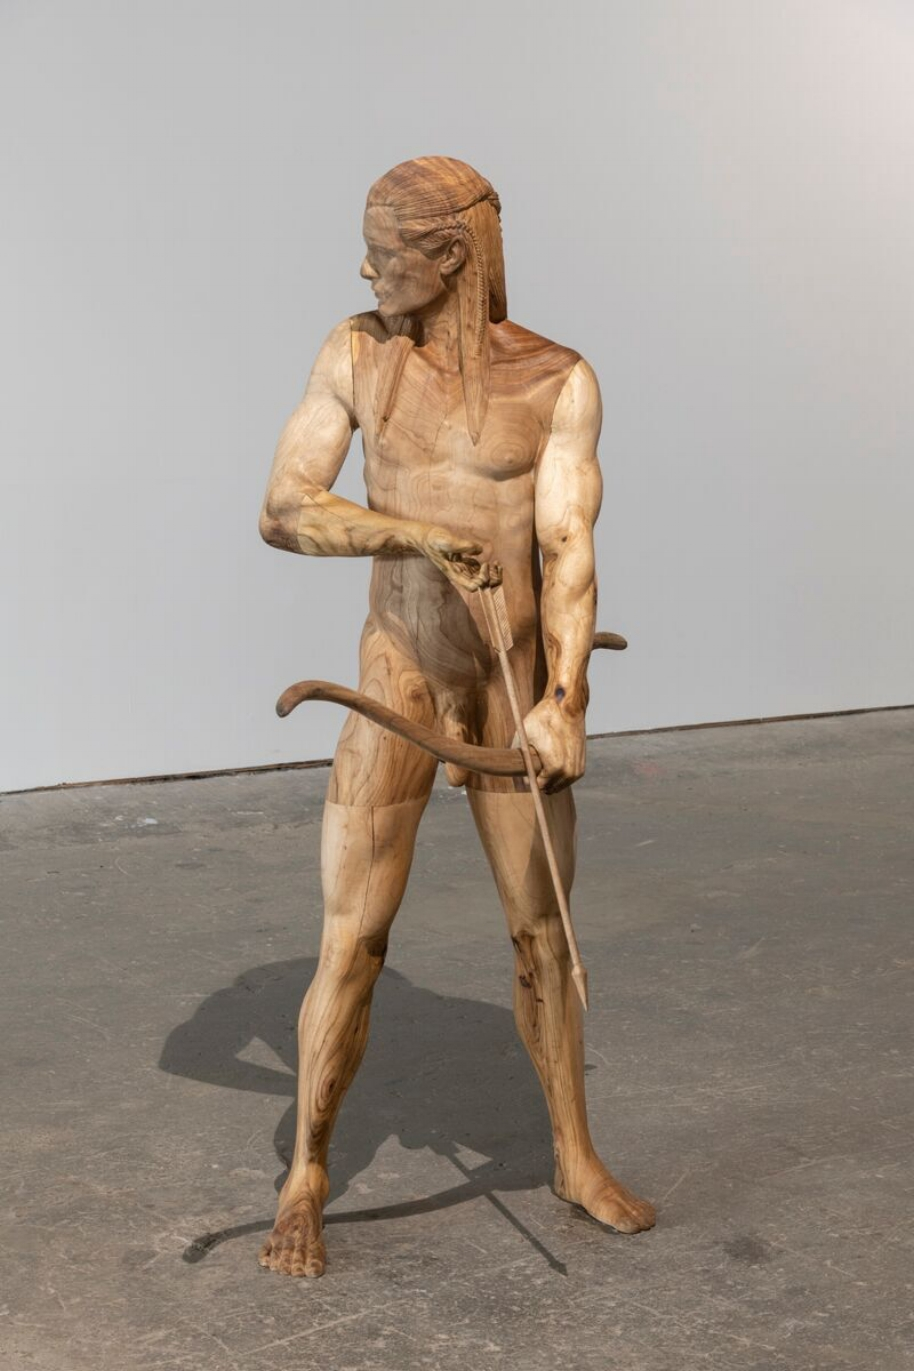 Legolas , 2018, Wood, 185 x 86 x 78 cm Courtesy the artist Yves Scherer and Cassina Projects